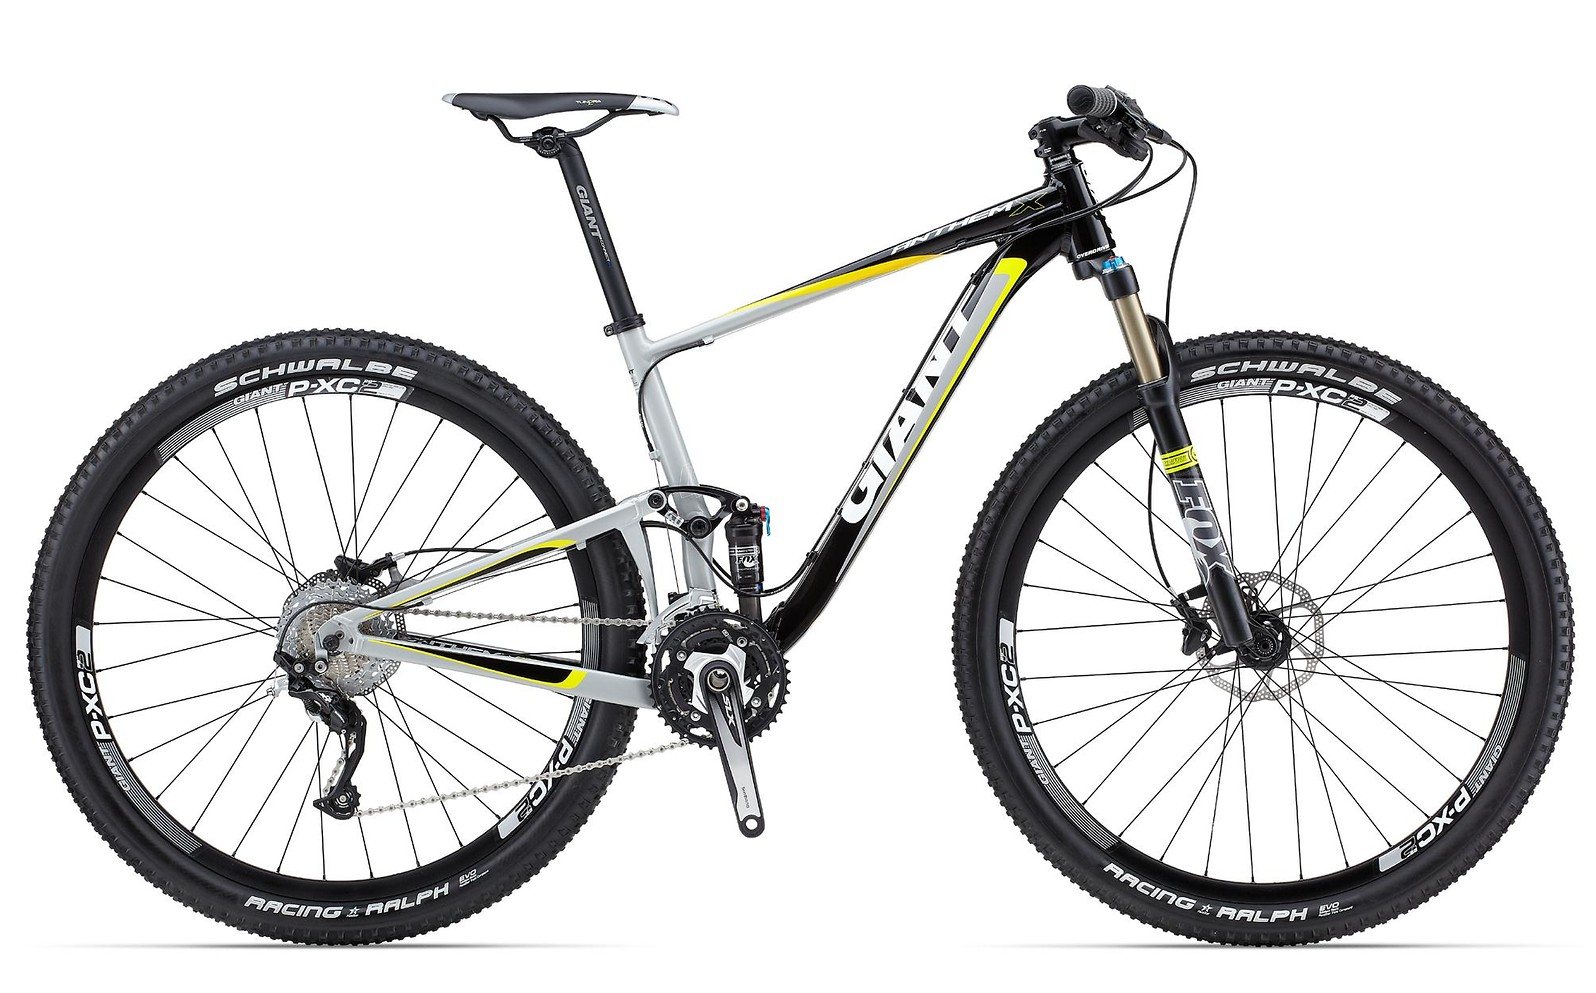 2013 Giant Anthem X 29er 1 Bike 2013 Anthem_X_29er_1